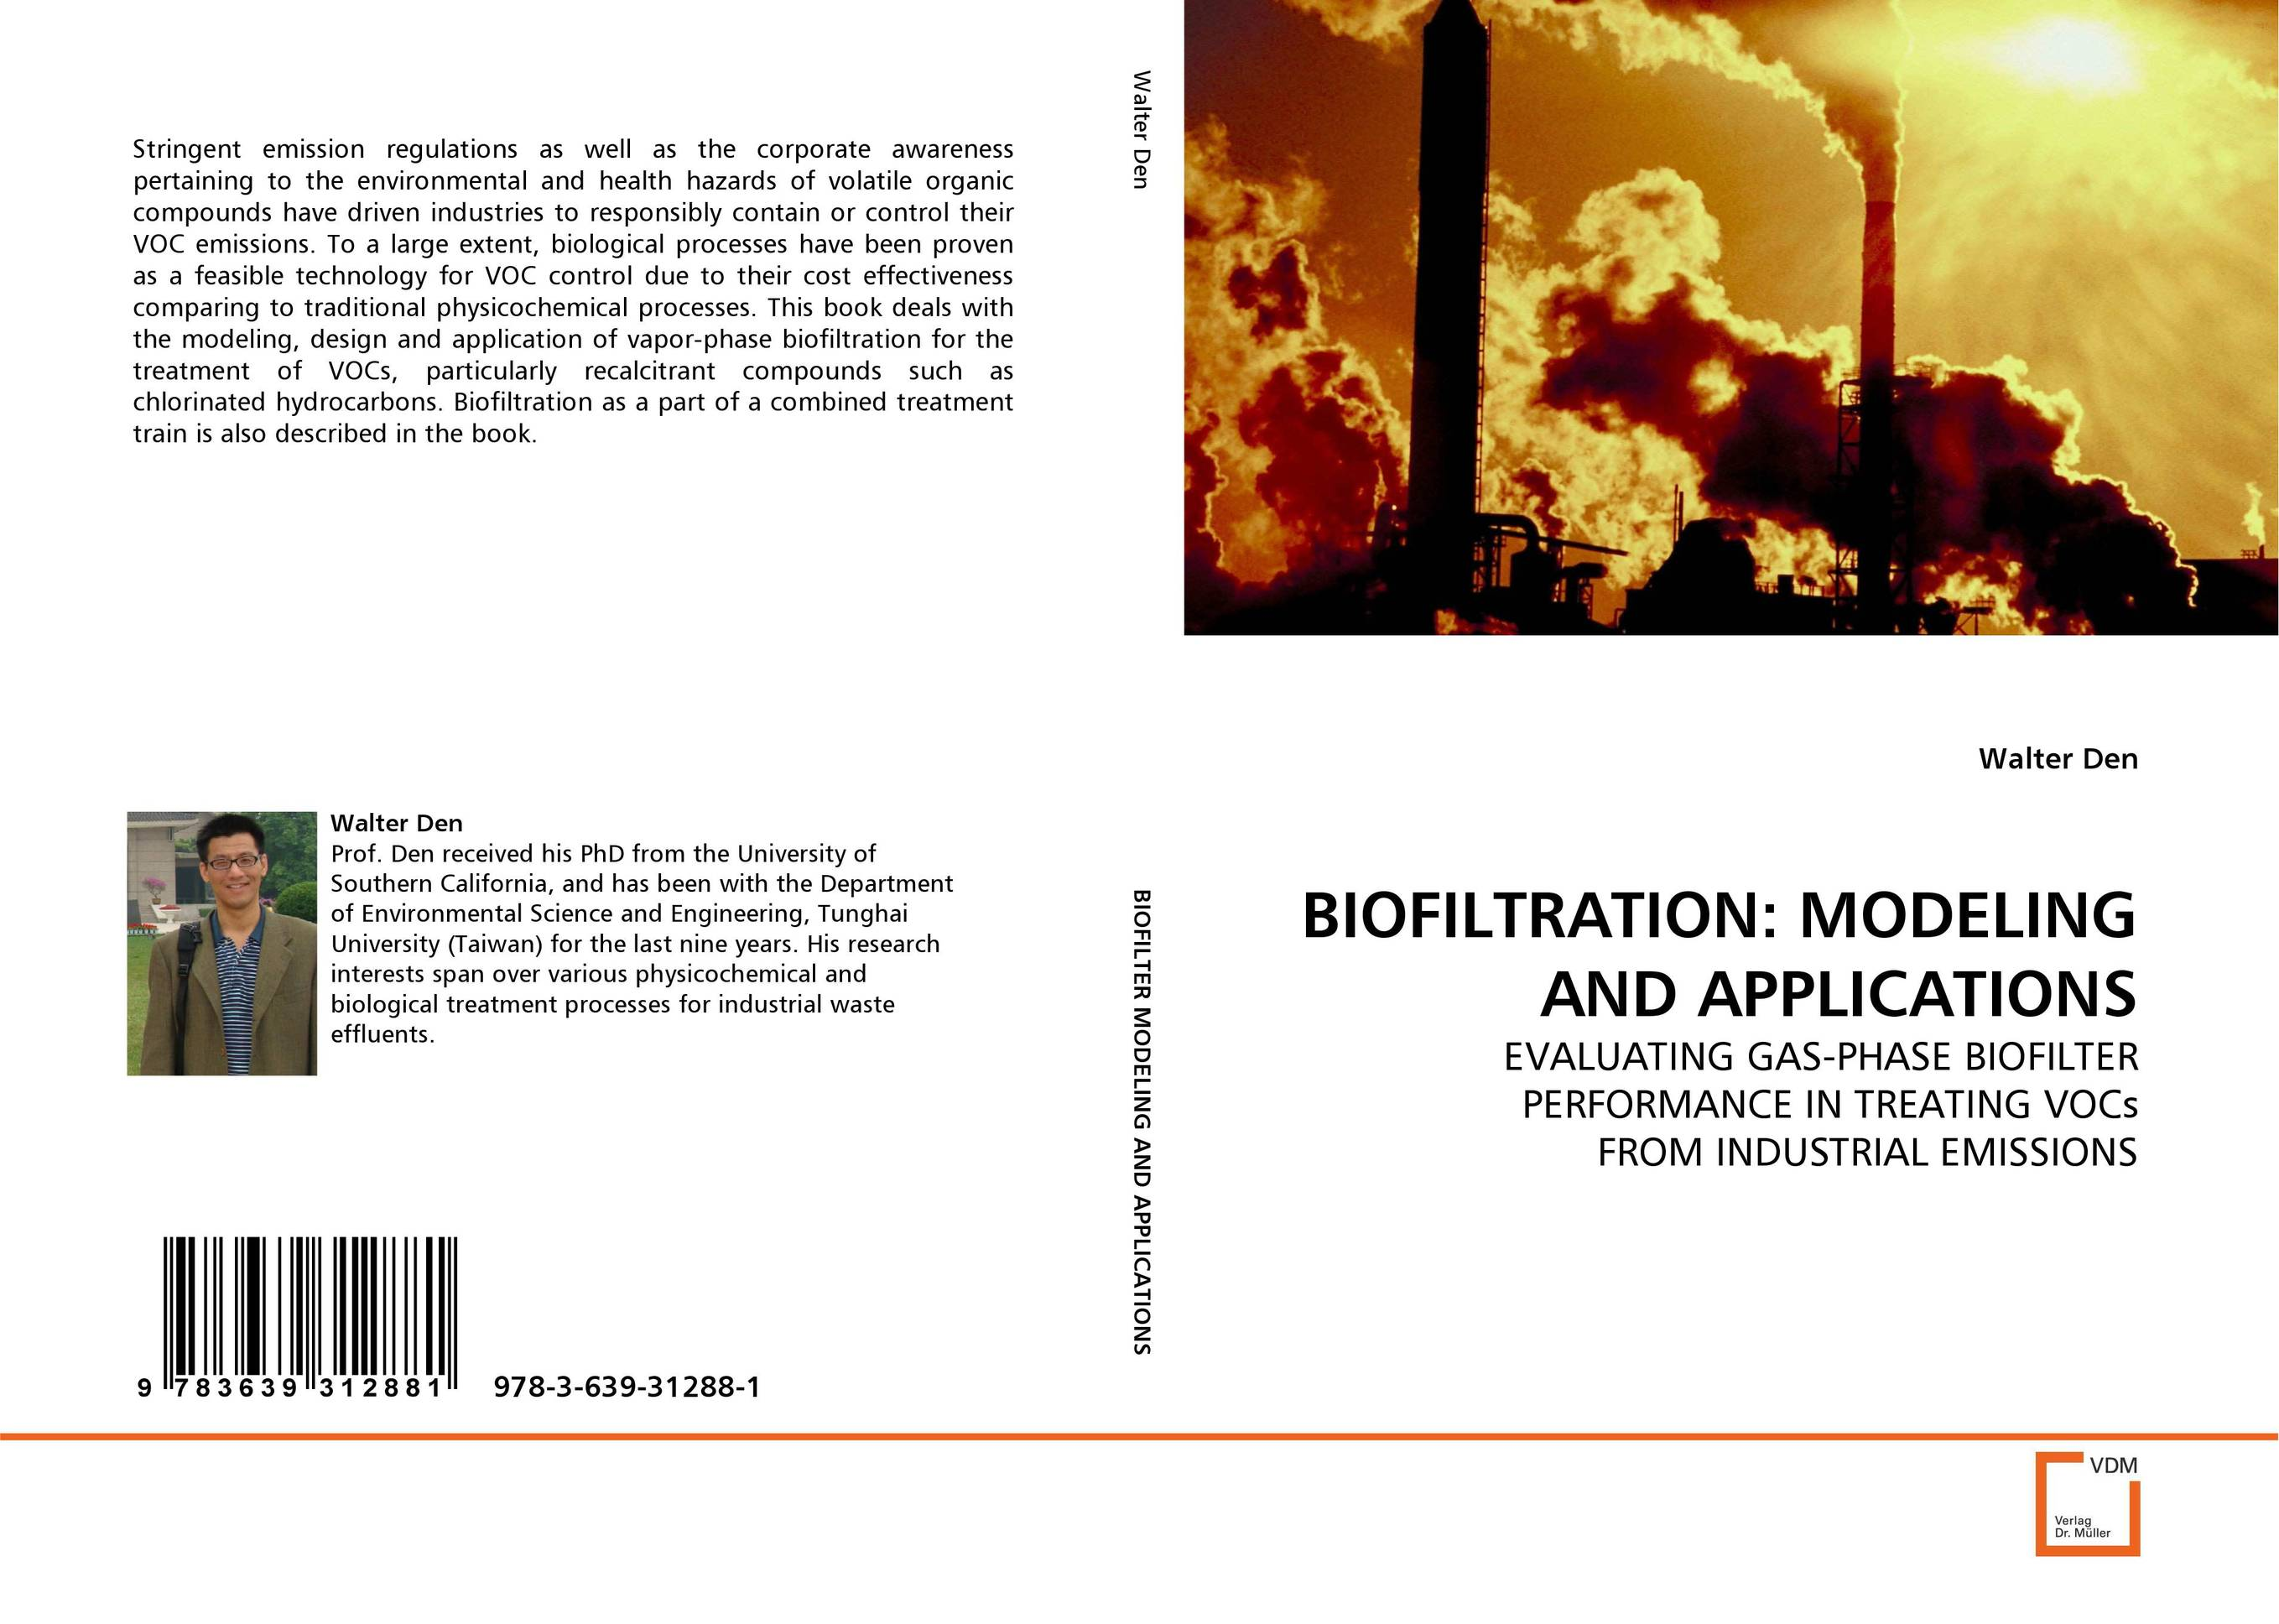 BIOFILTRATION: MODELING AND APPLICATIONS driven to distraction